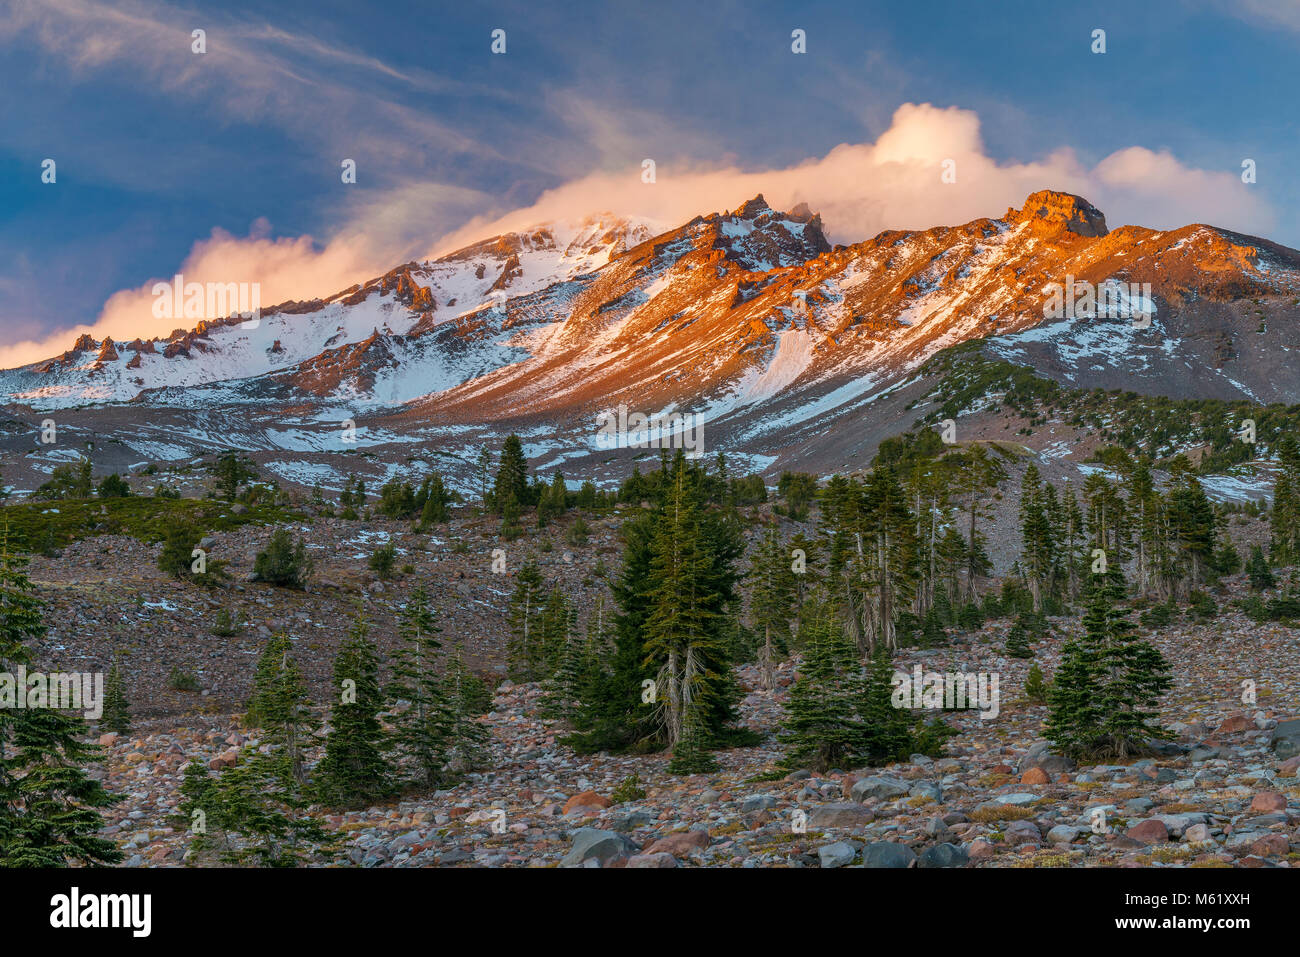 Le mont Shasta, Panther pré, Shasta-Trinity National Forest, Californie Photo Stock